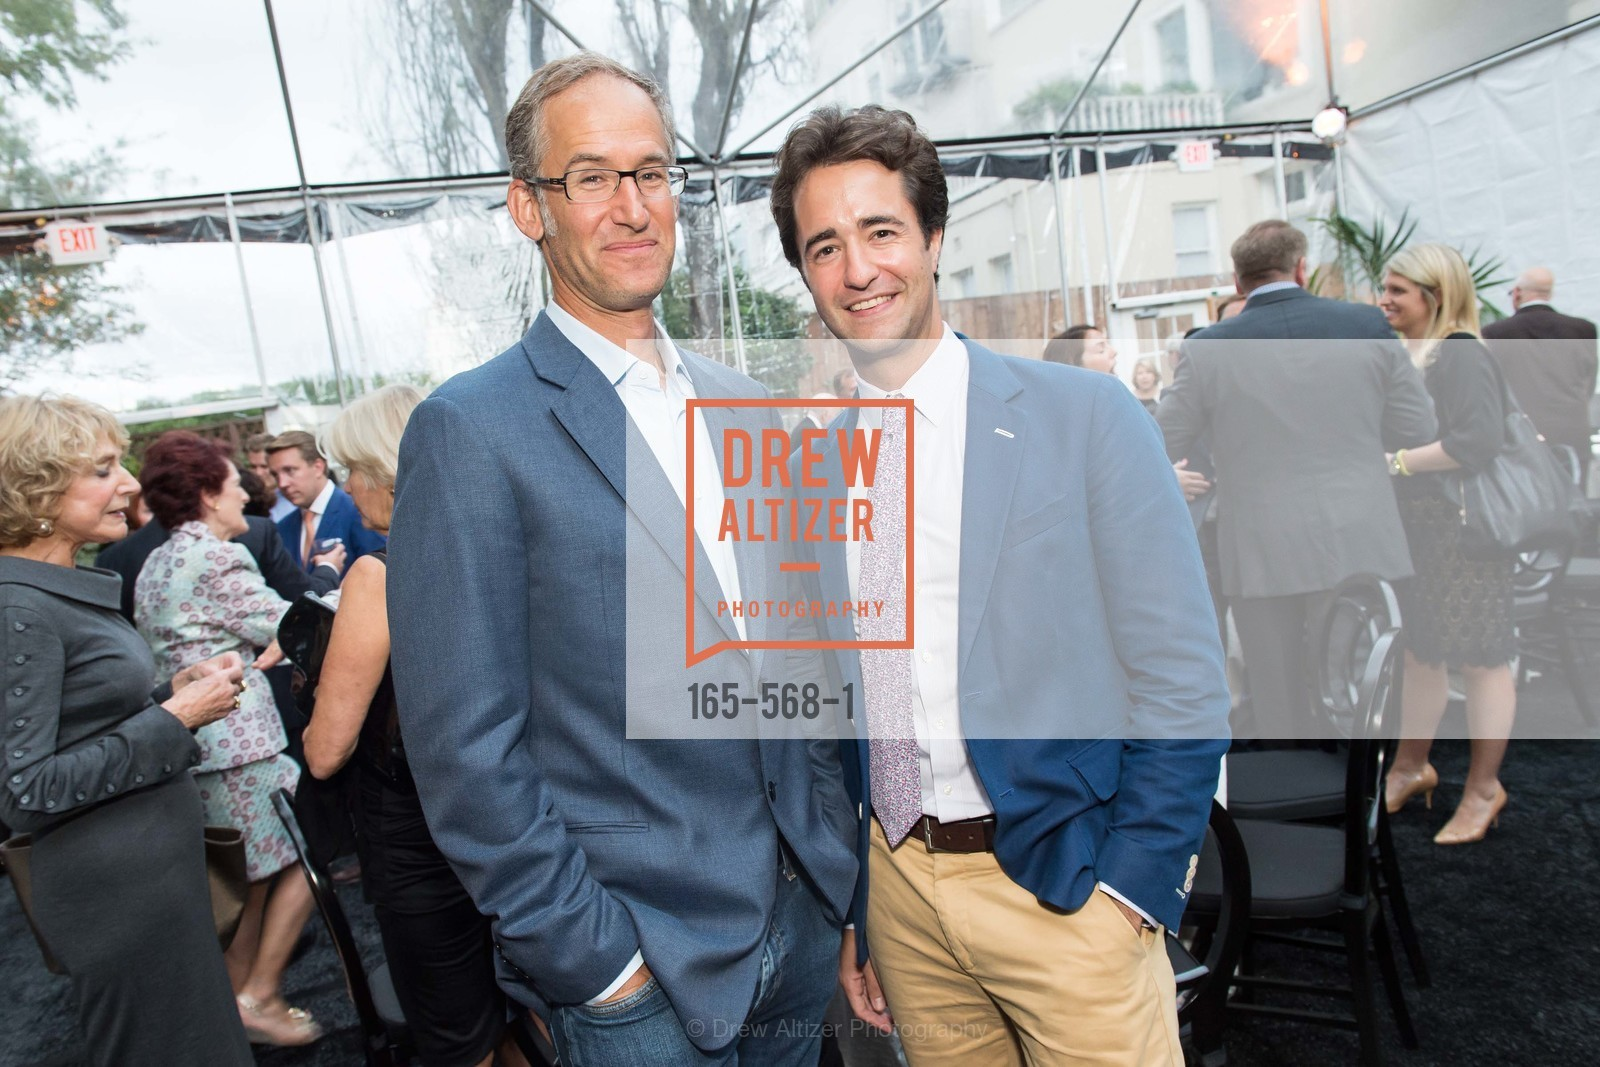 Ethan Blatzman, Jeremiah Evers, SOTHEBY'S  Hosts a Private Viewing of Highlights from the Collection of MRS. PAUL MELLON, US, September 17th, 2014,Drew Altizer, Drew Altizer Photography, full-service agency, private events, San Francisco photographer, photographer california